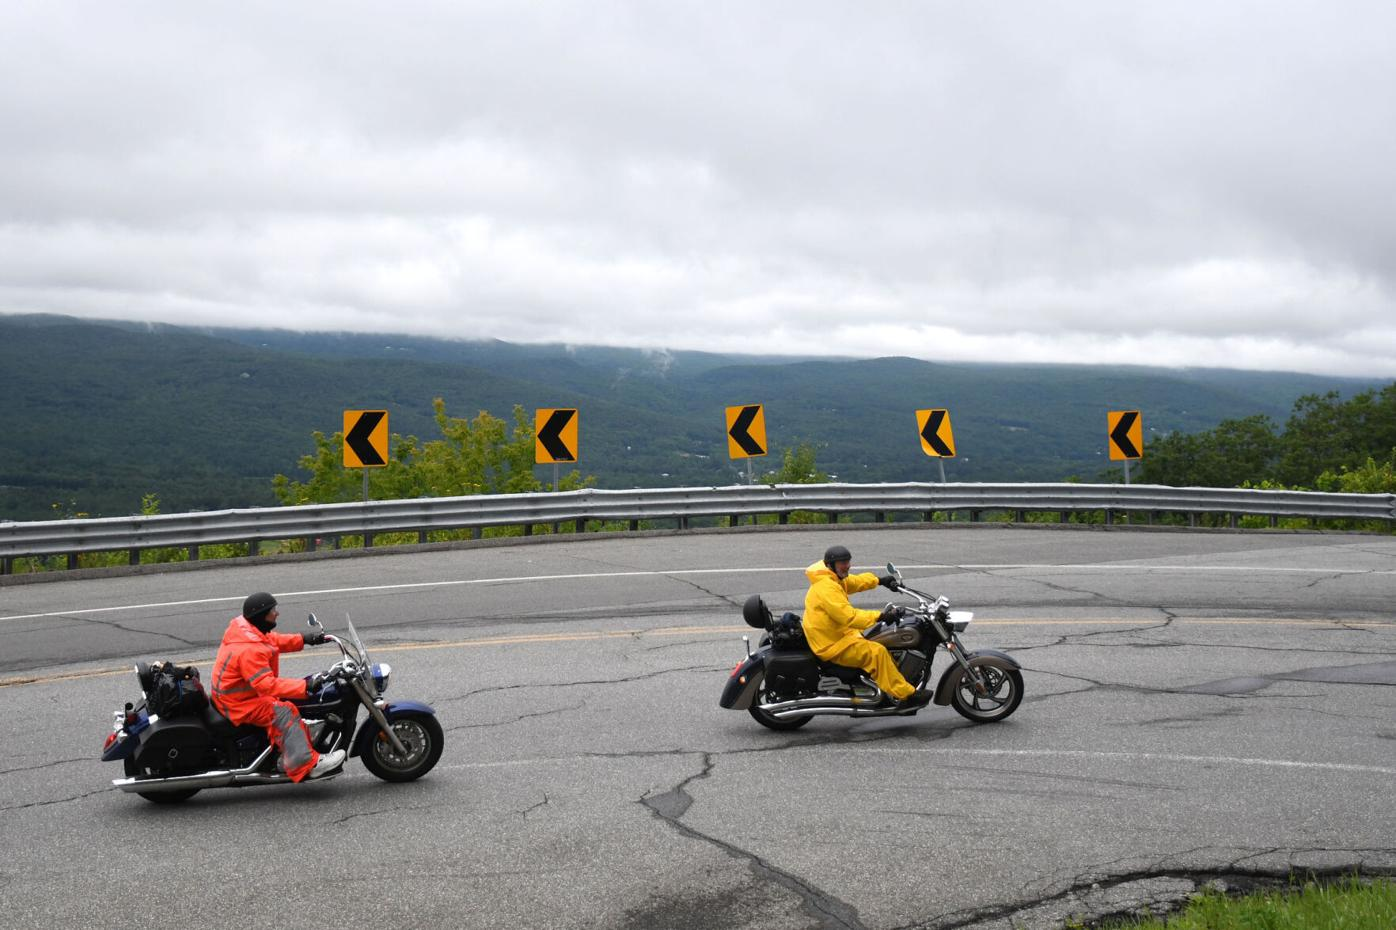 Two motorcycles drive up a hairpin turn